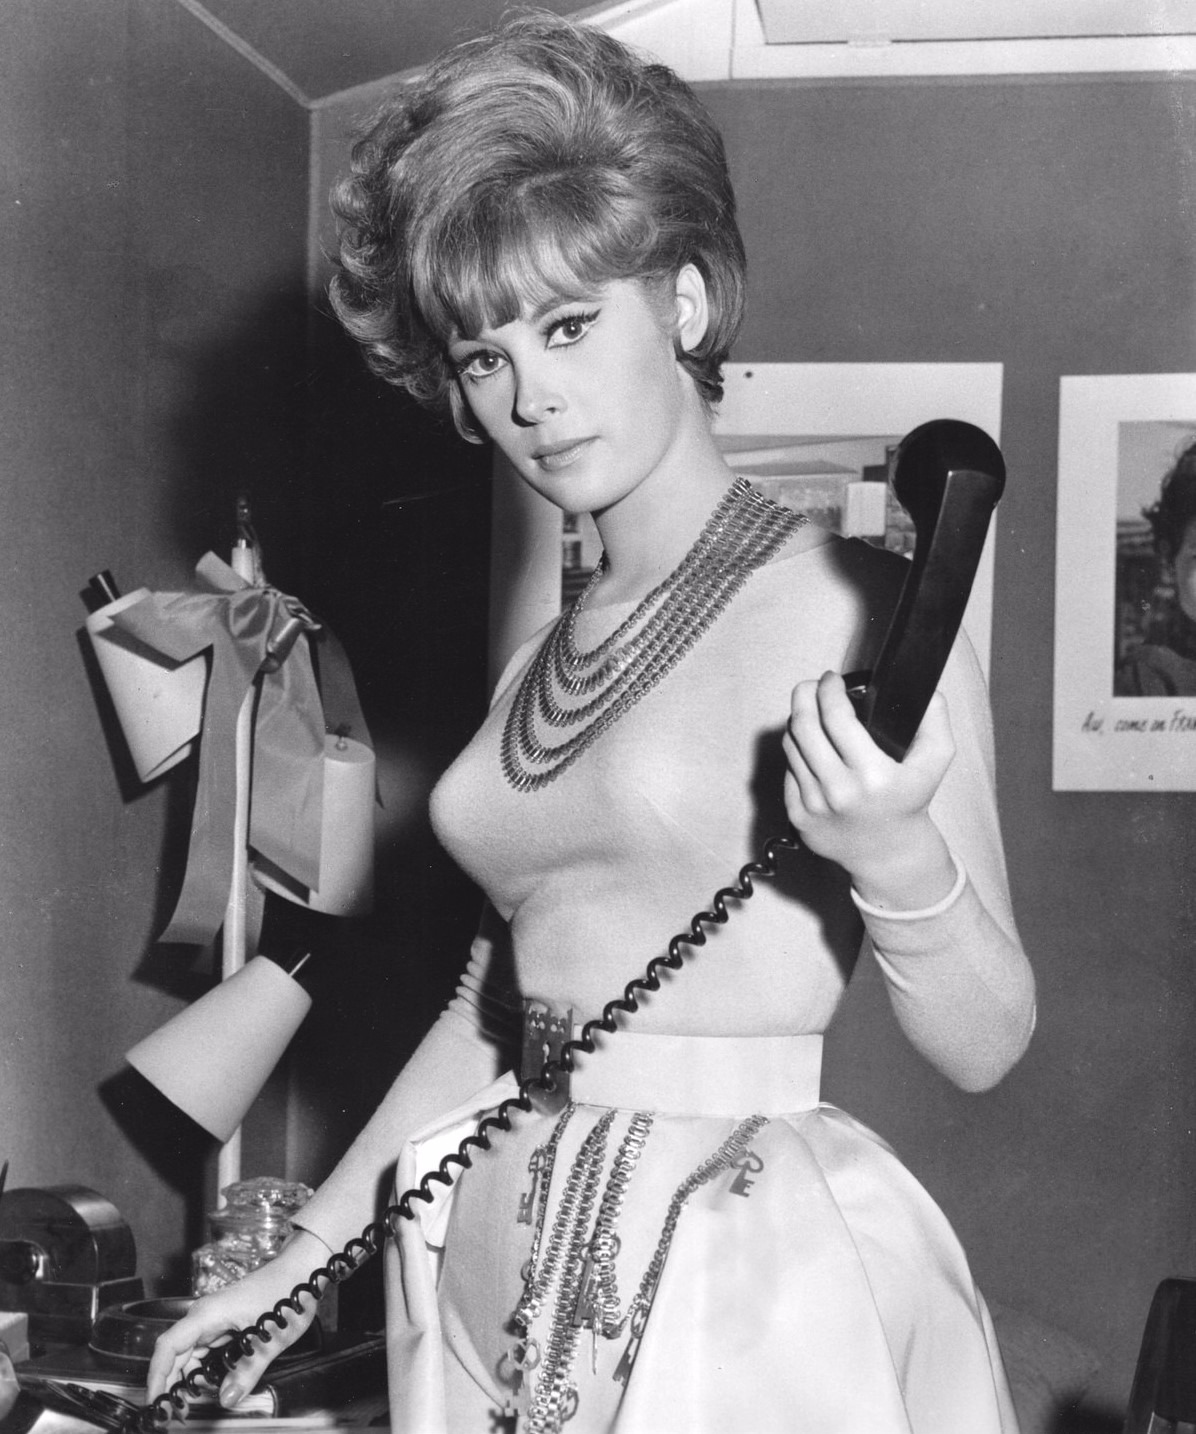 Jill St. John as Peggy John in the movie Come Blow Your Horn